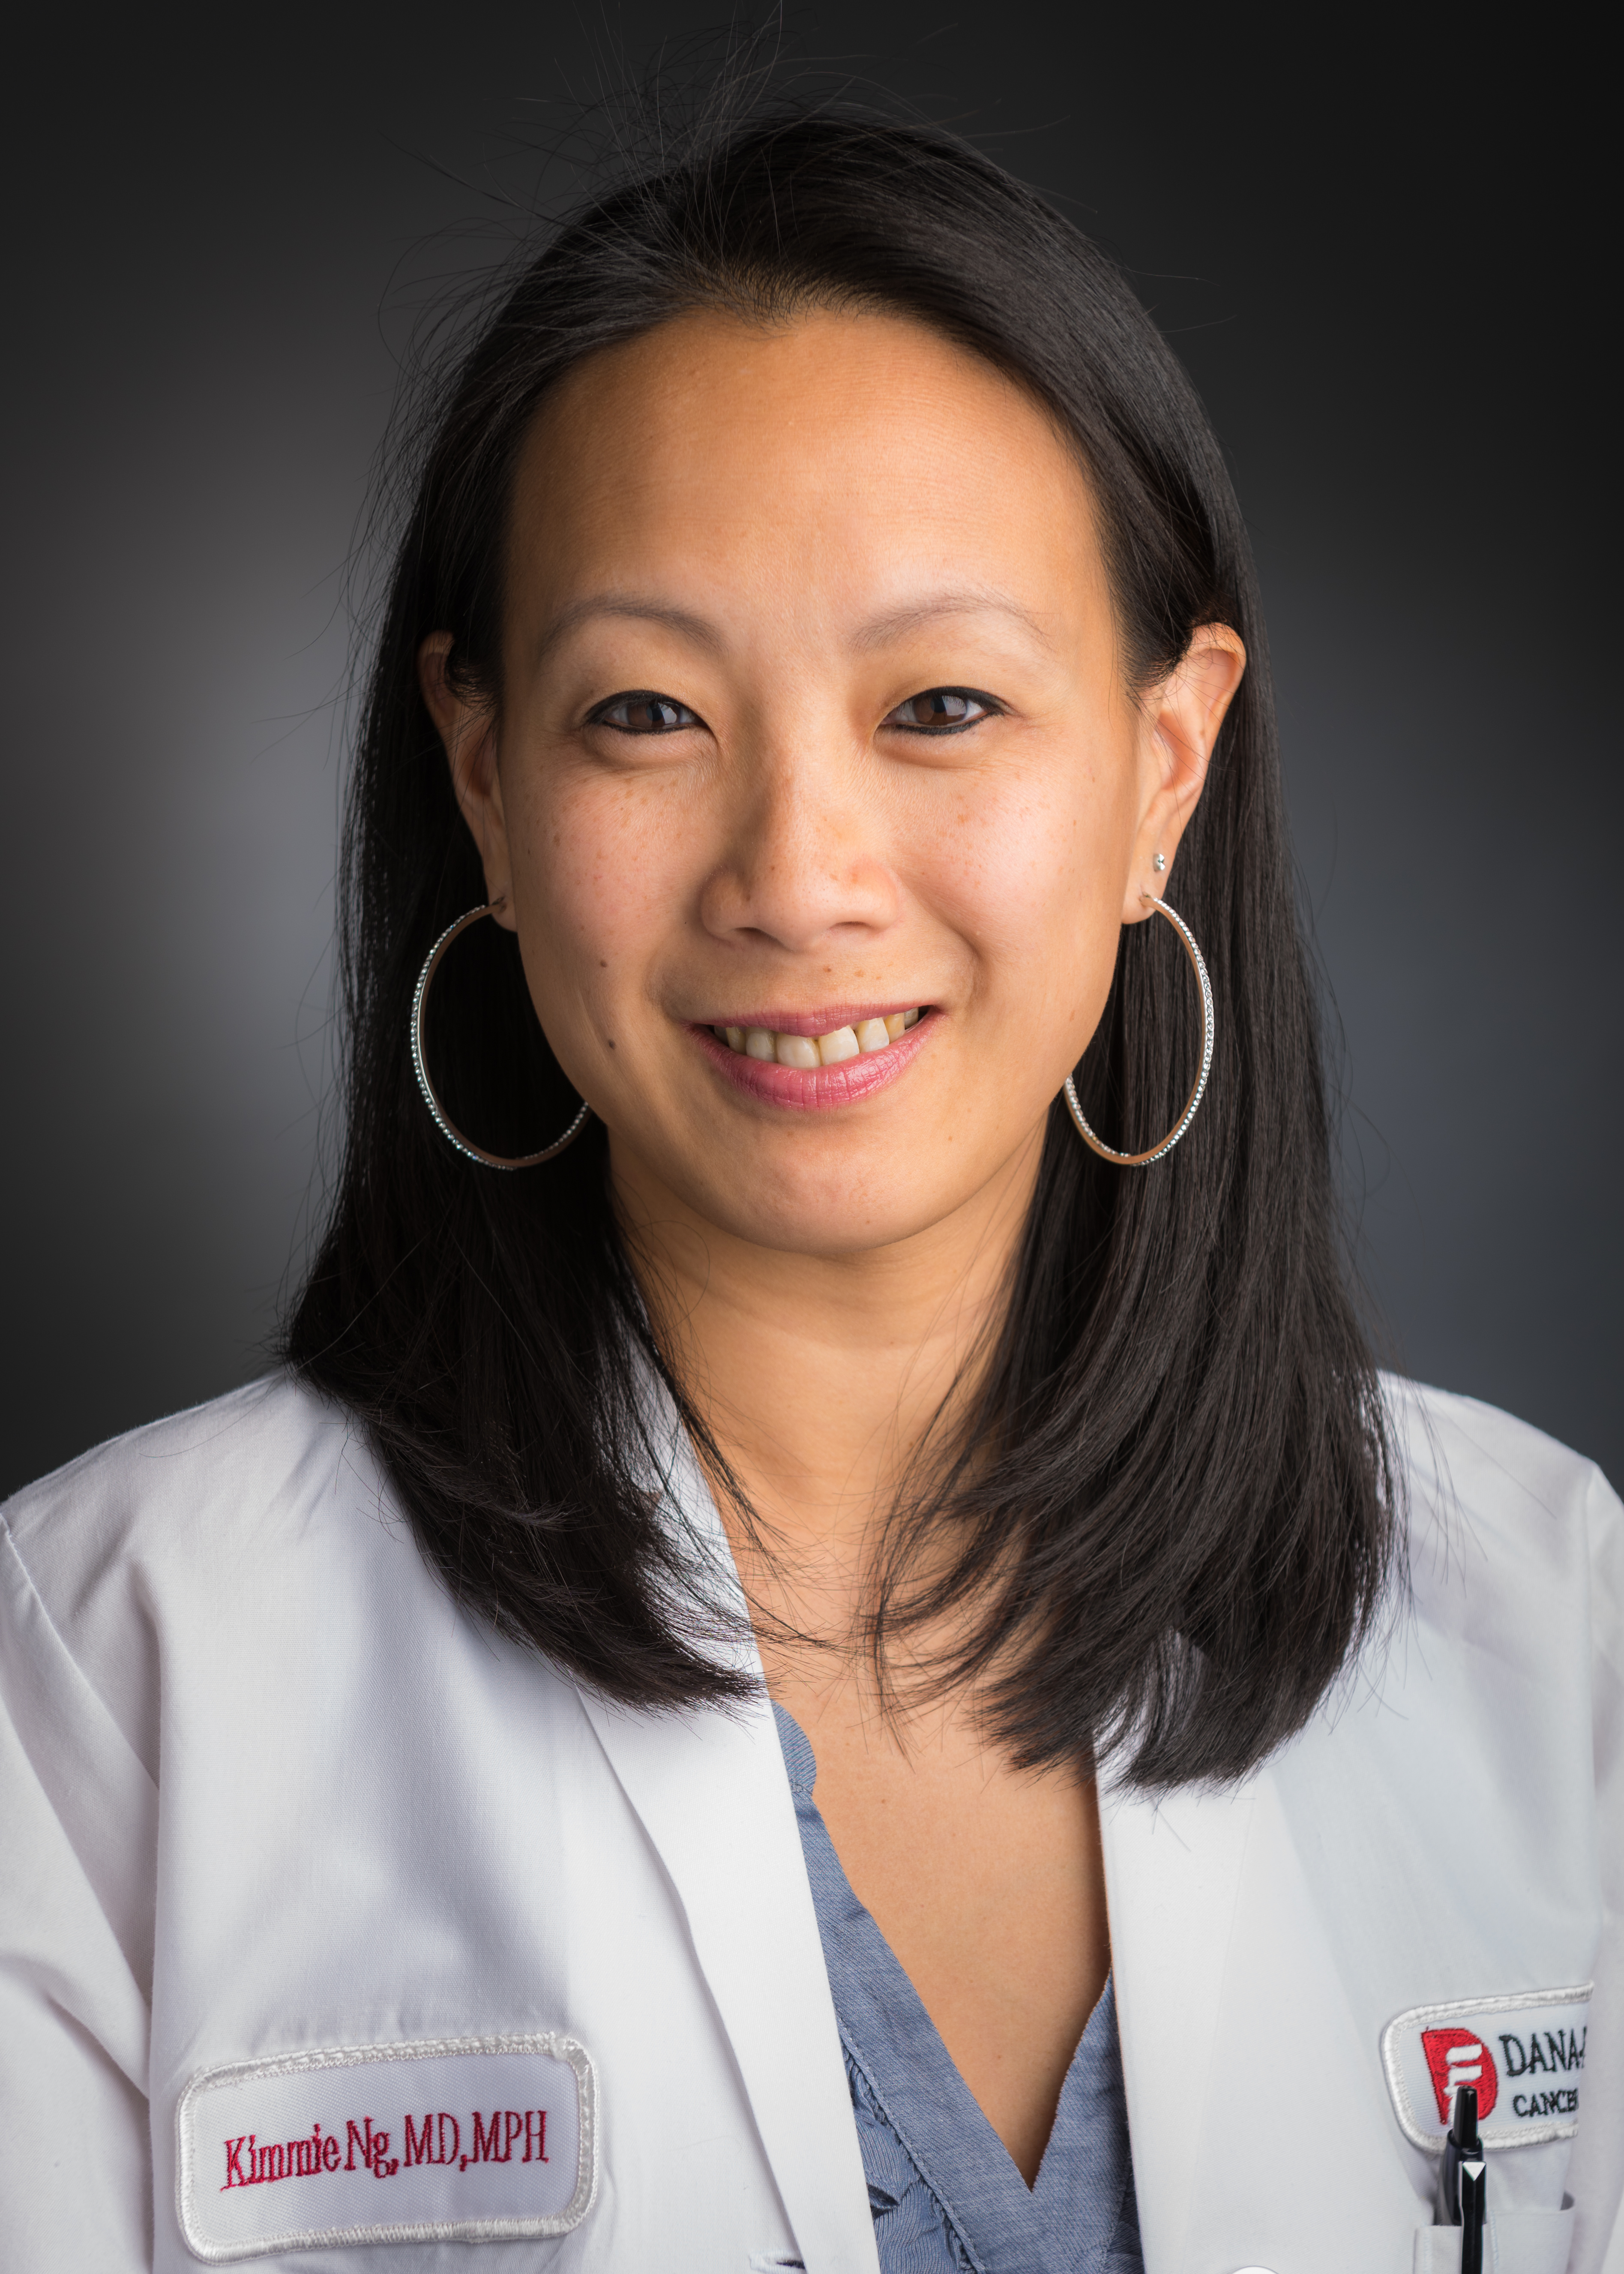 Kimmie Ng, Dana-Farber Cancer Institute